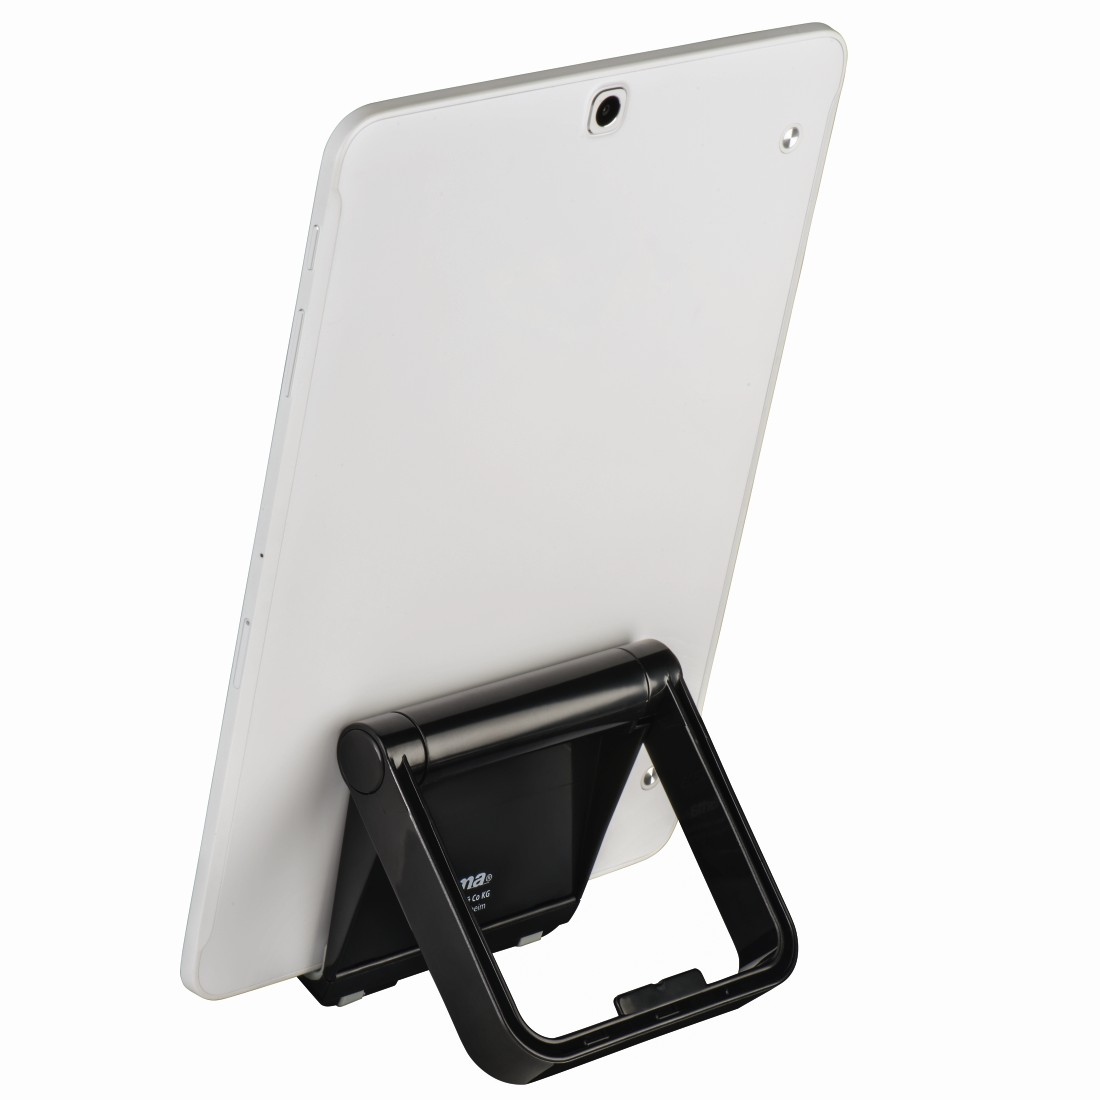 awx7 High-Res Appliance 7 - Hama, Support Swivel pour tablettes et smartphones